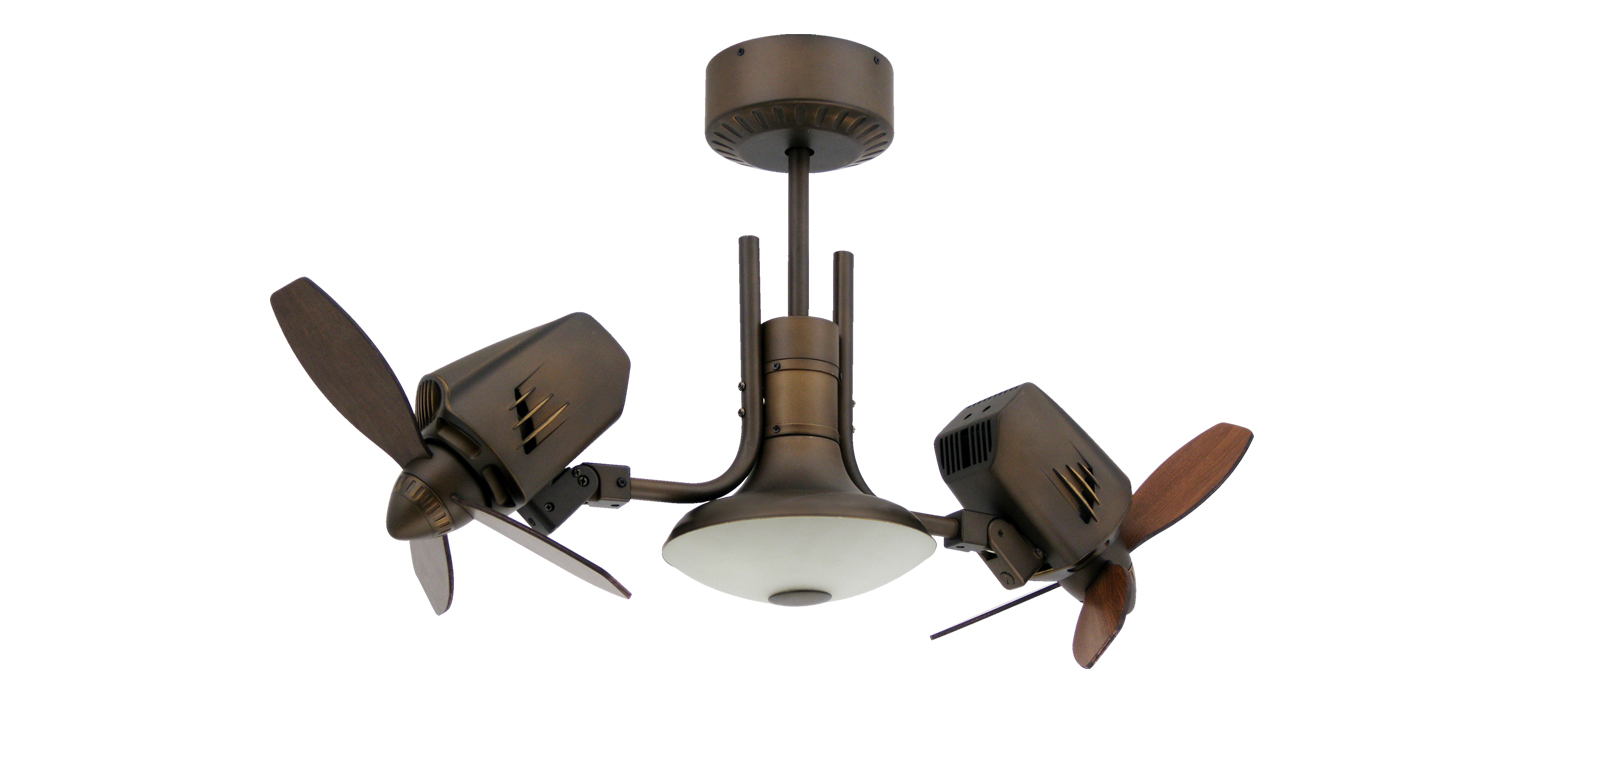 Unusual Ceiling Fans For Sale Top 25 Ceiling Fans Unique Of 2019 Warisan Lighting